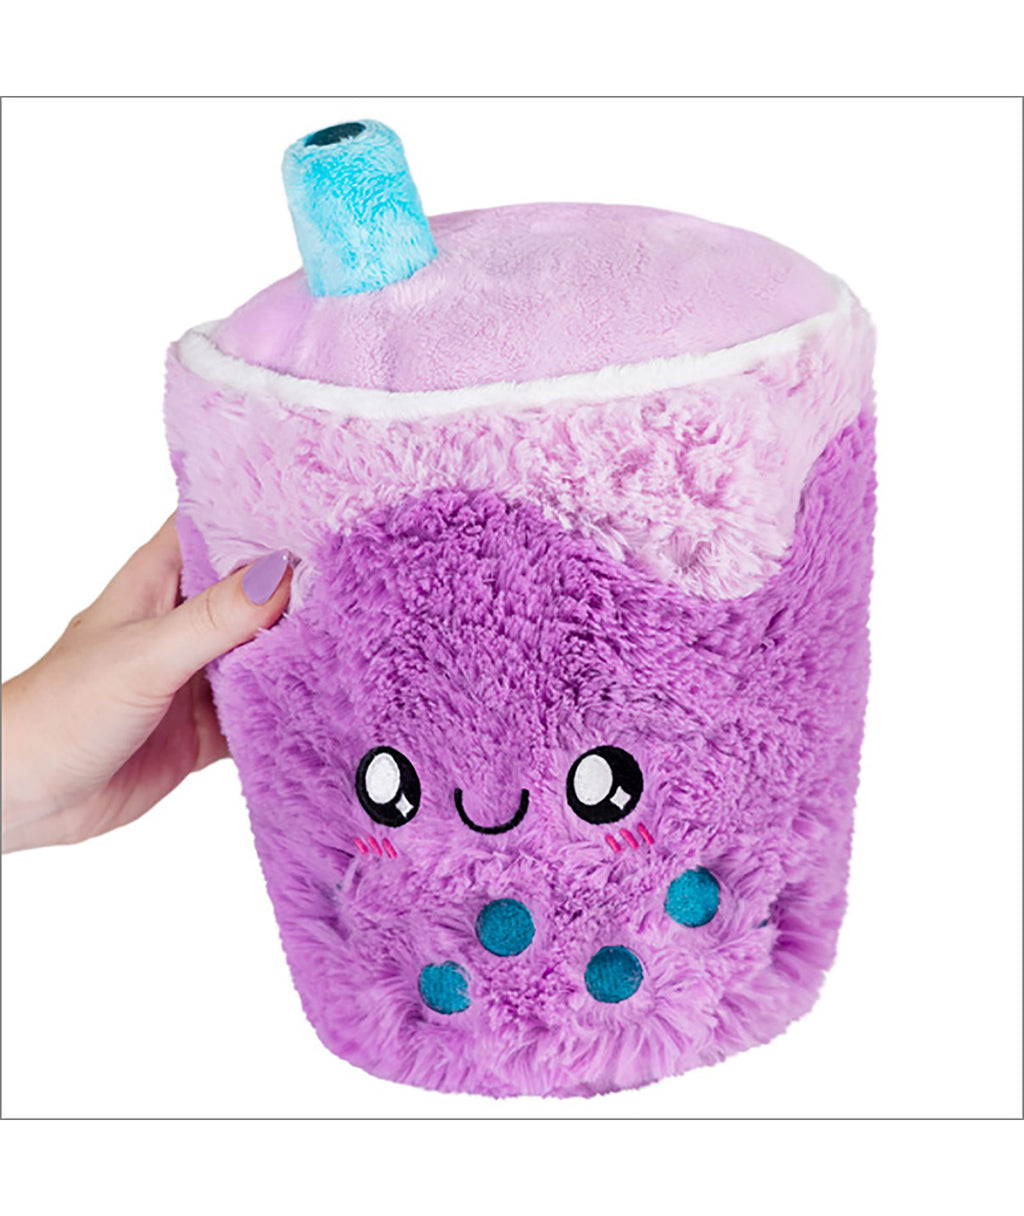 Squishable Mini Bubble Tea